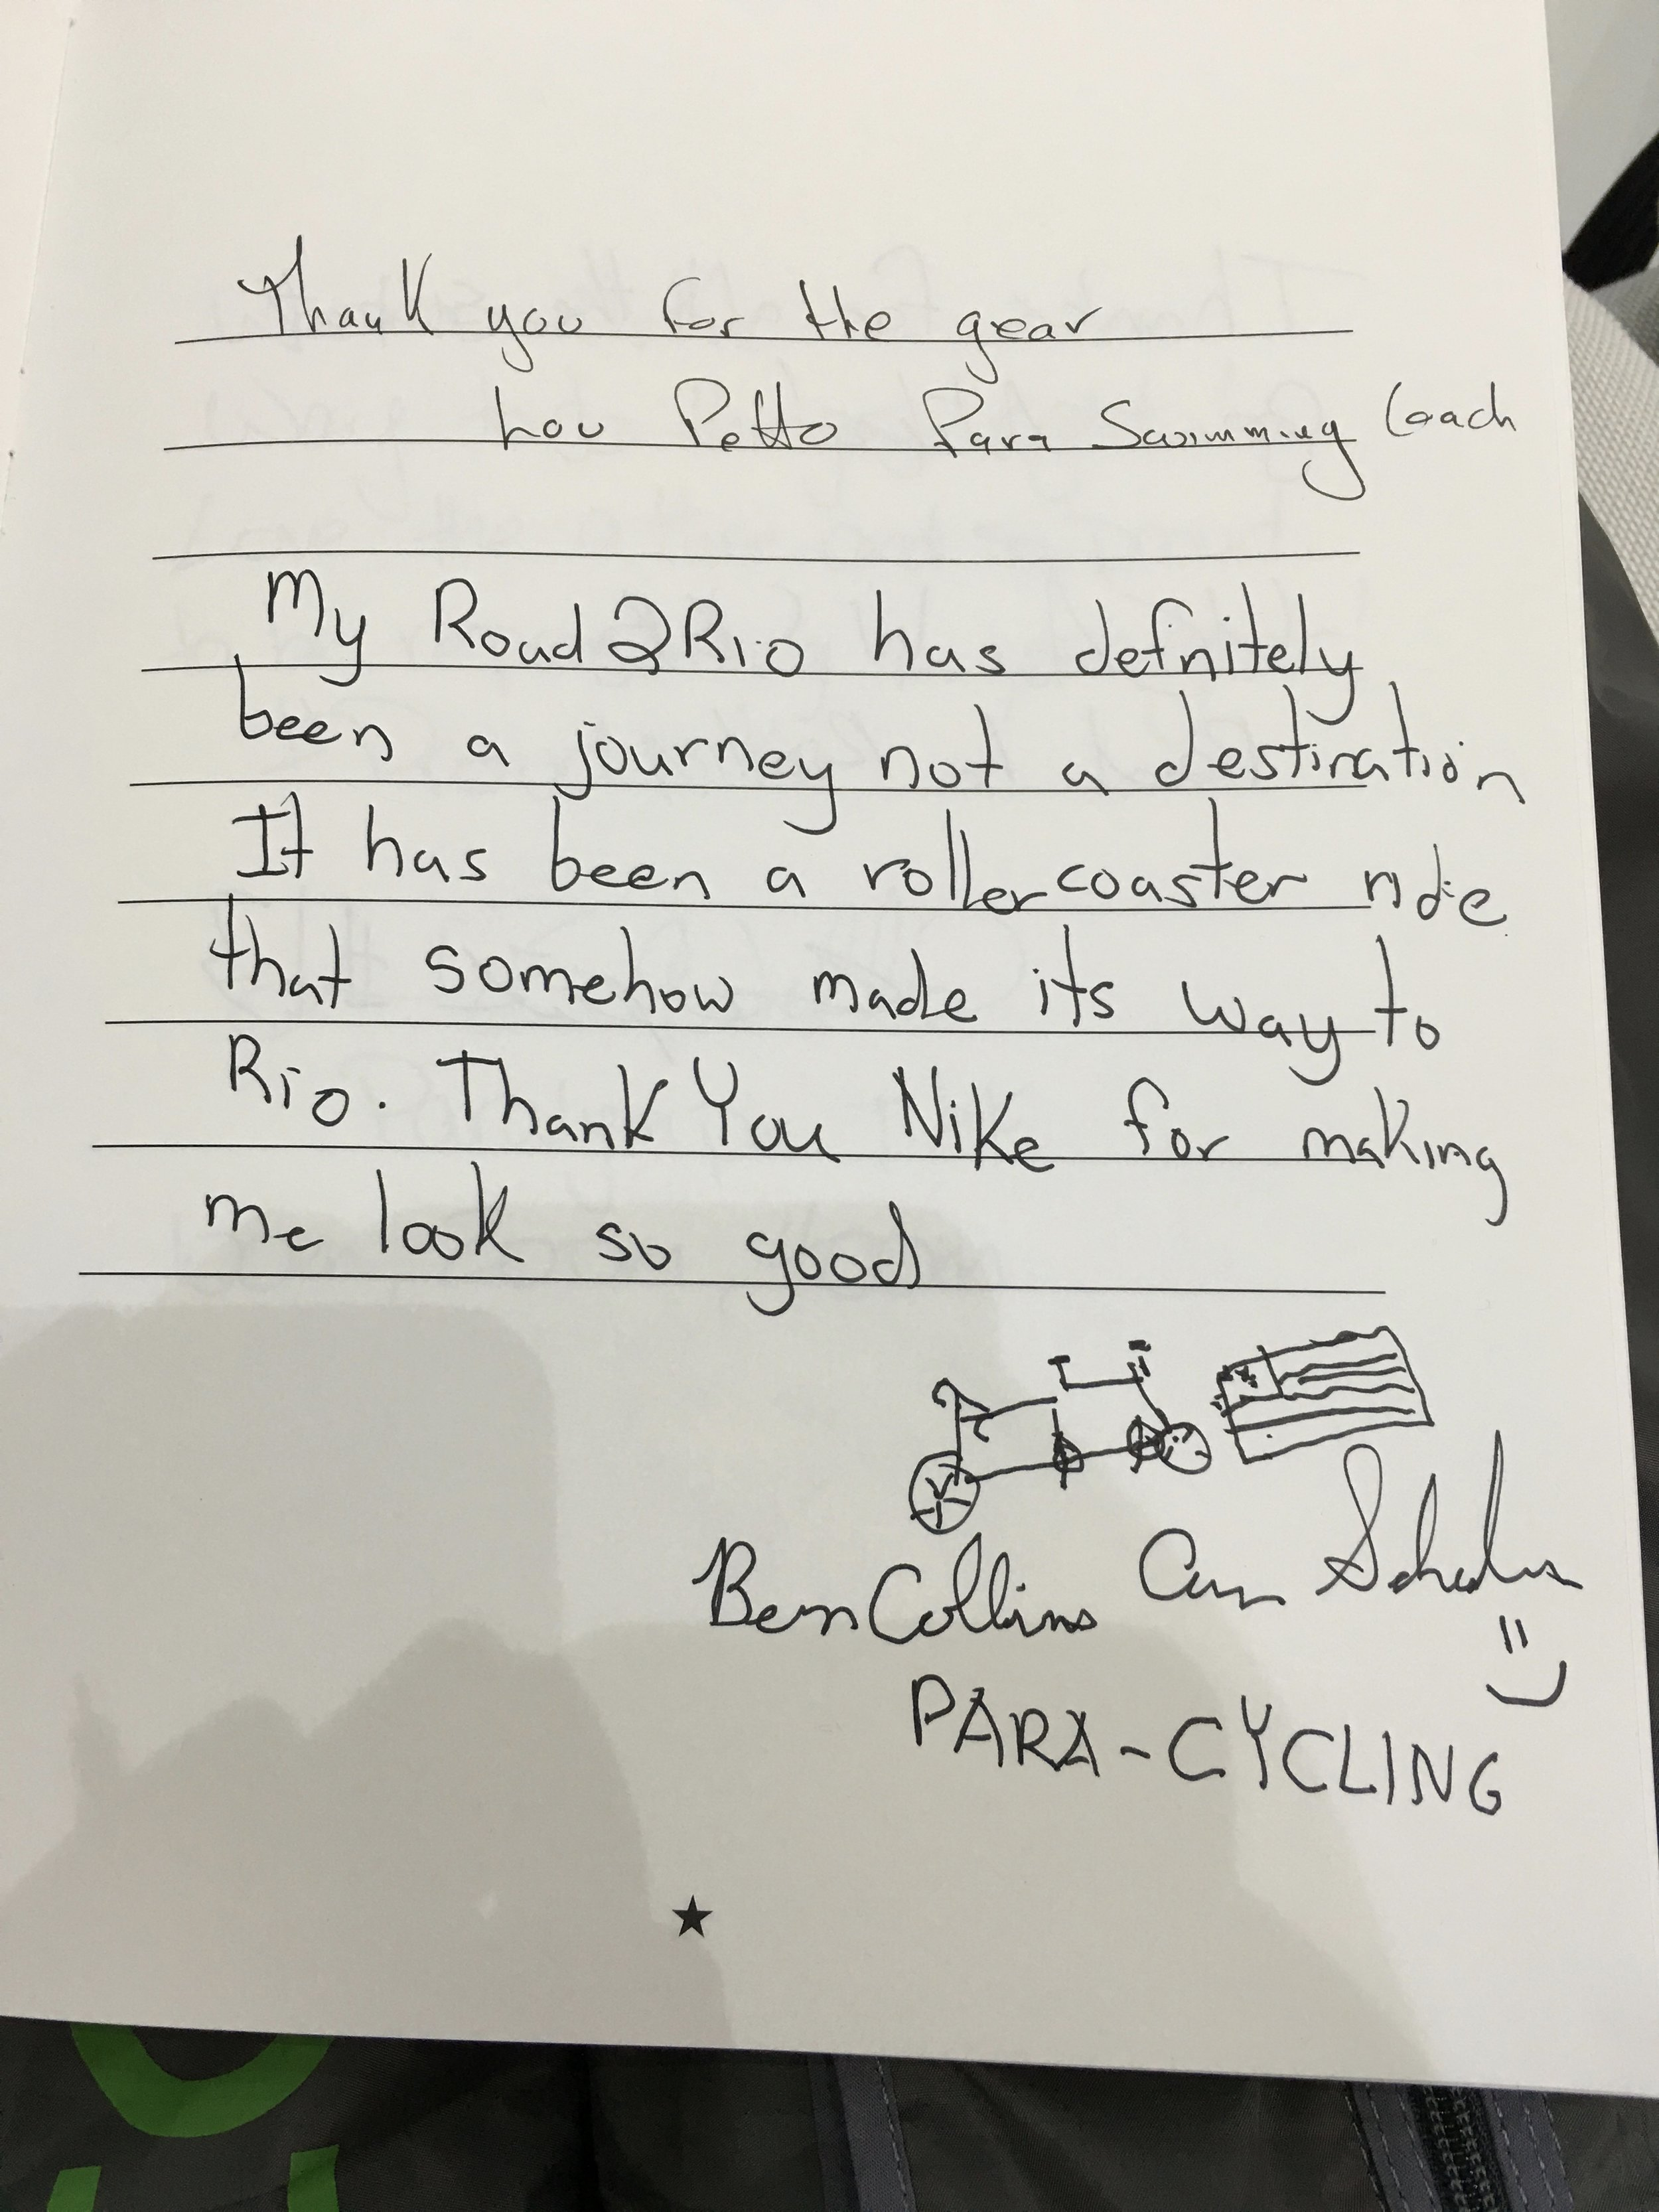 My personal message to Nike in their memory book saying THANKS for all that they do for Team USA